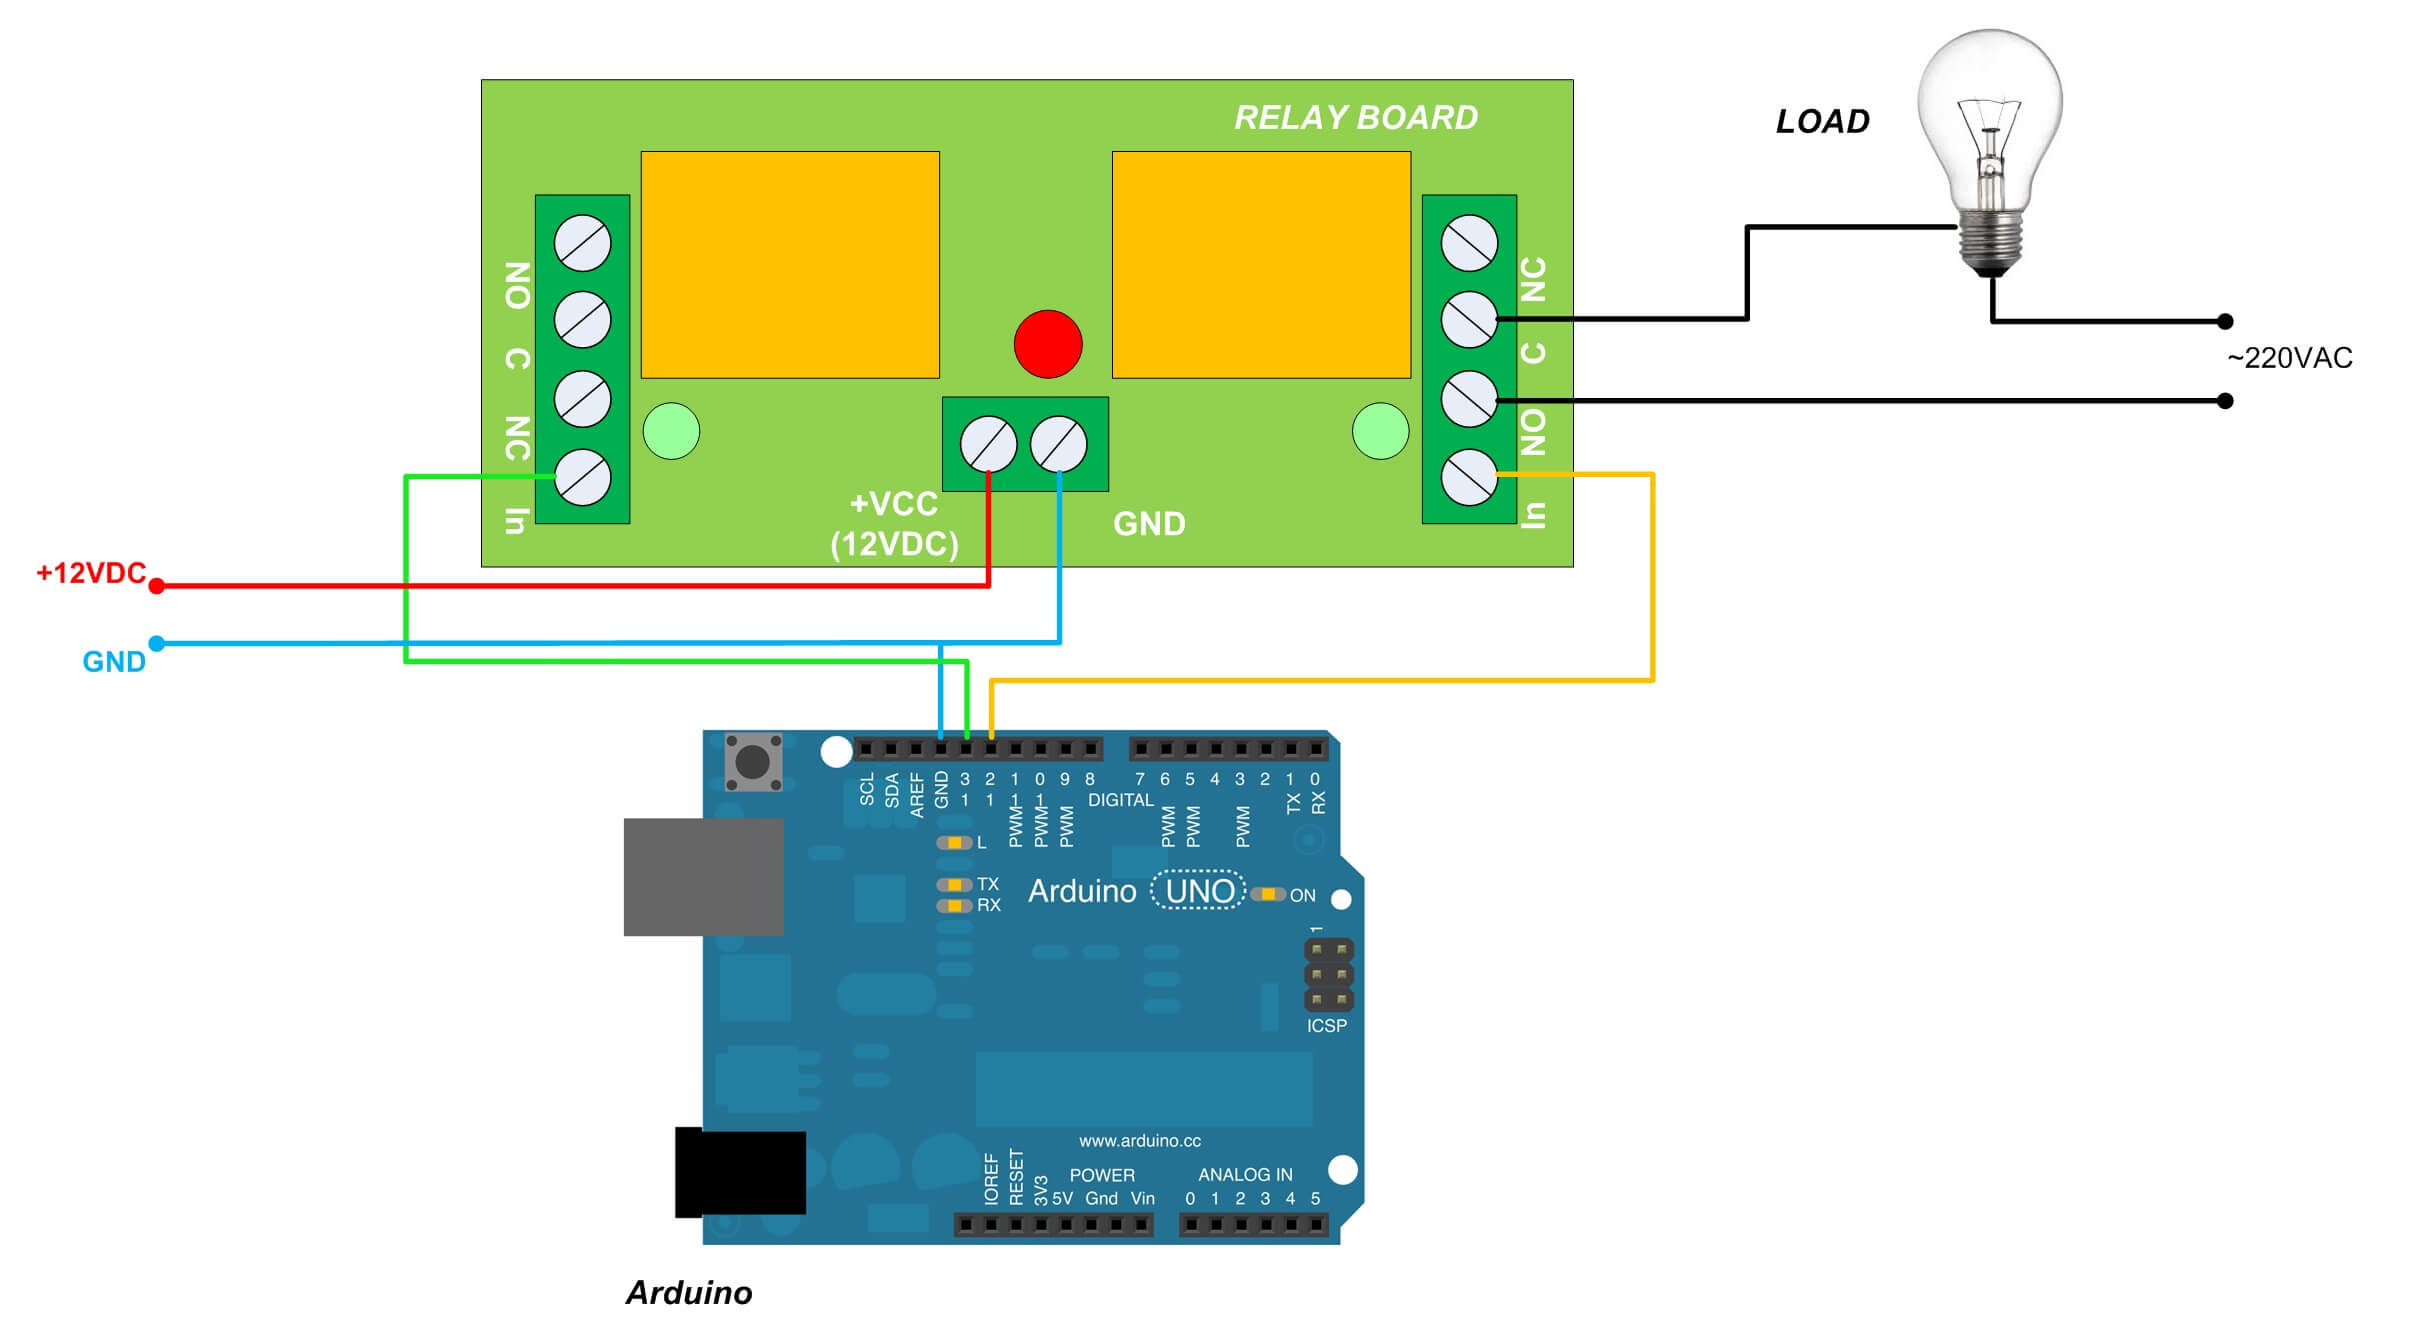 relay board connected to arduino